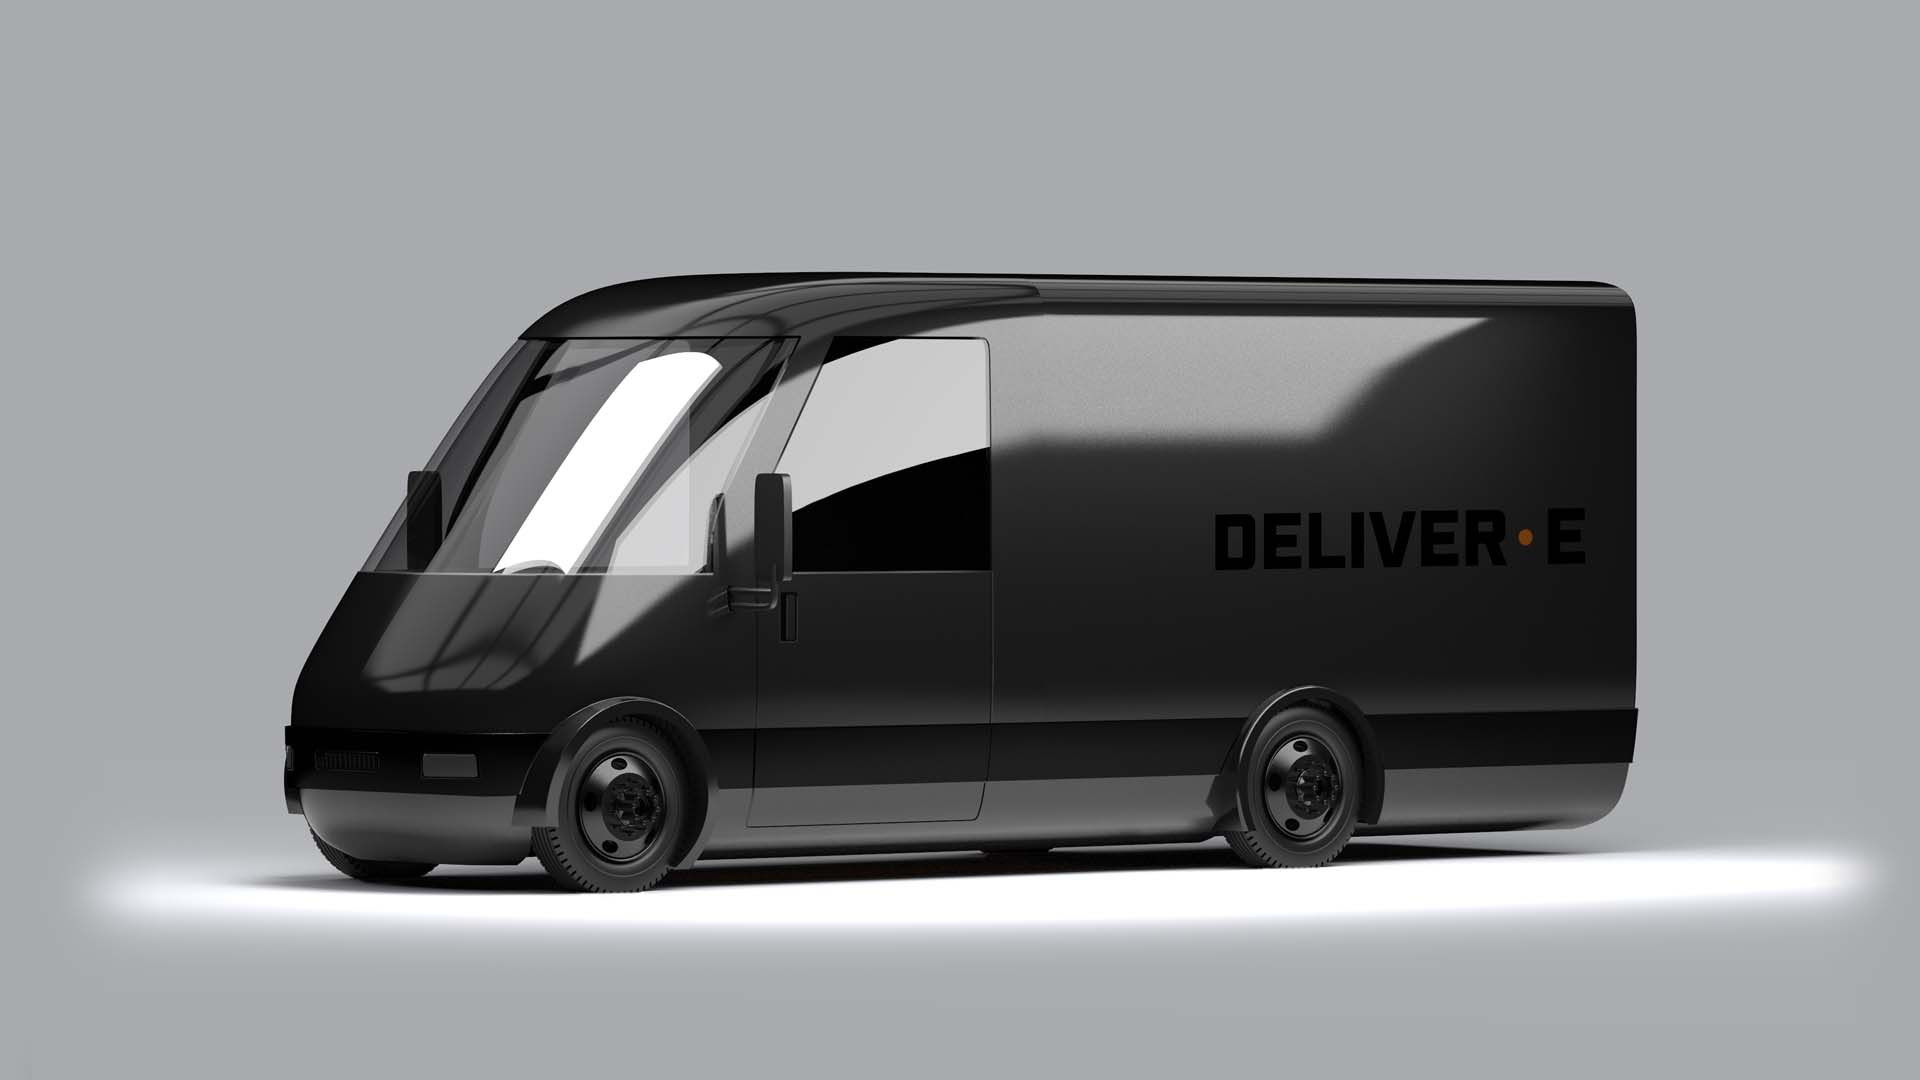 Bollinger shows off an electric delivery van headed for production in 2022